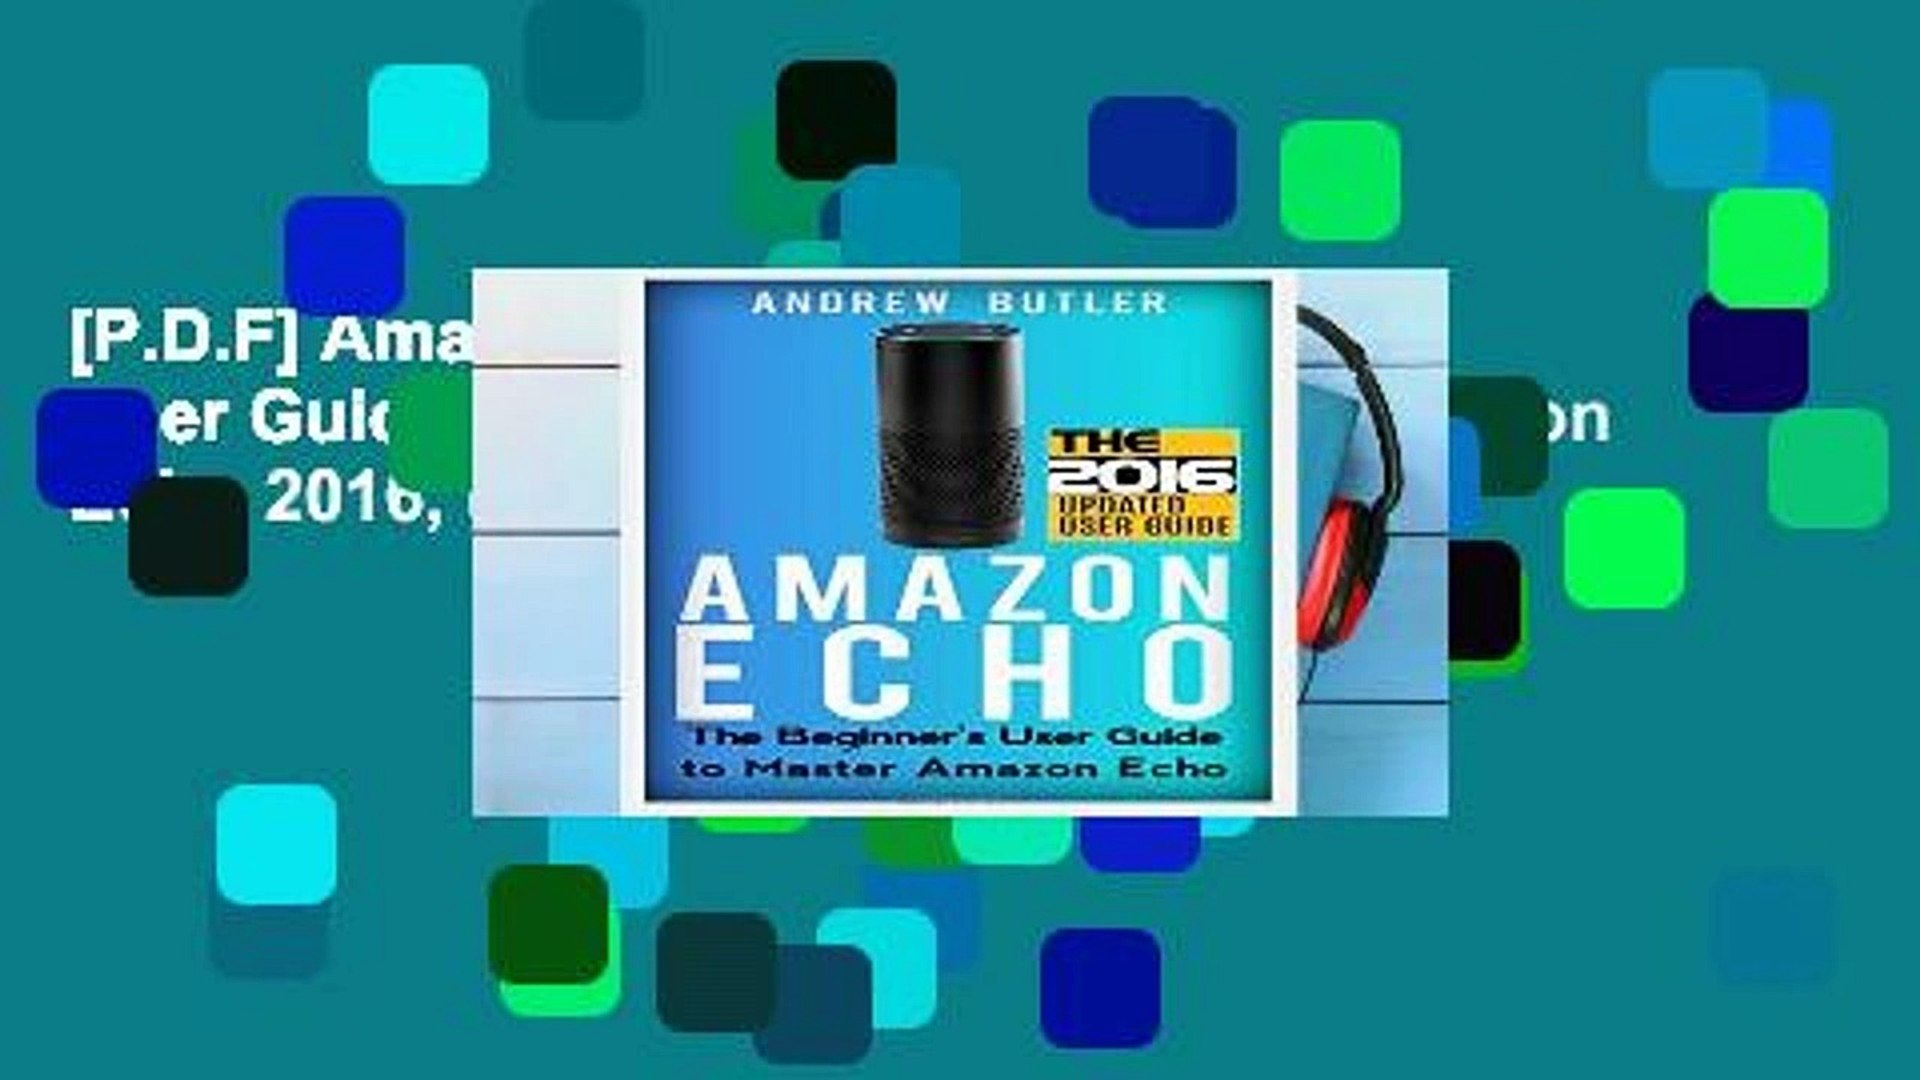 [P.D.F] Amazon Echo: The Beginner s User Guide to Master Amazon Echo (Amazon Echo 2016, user